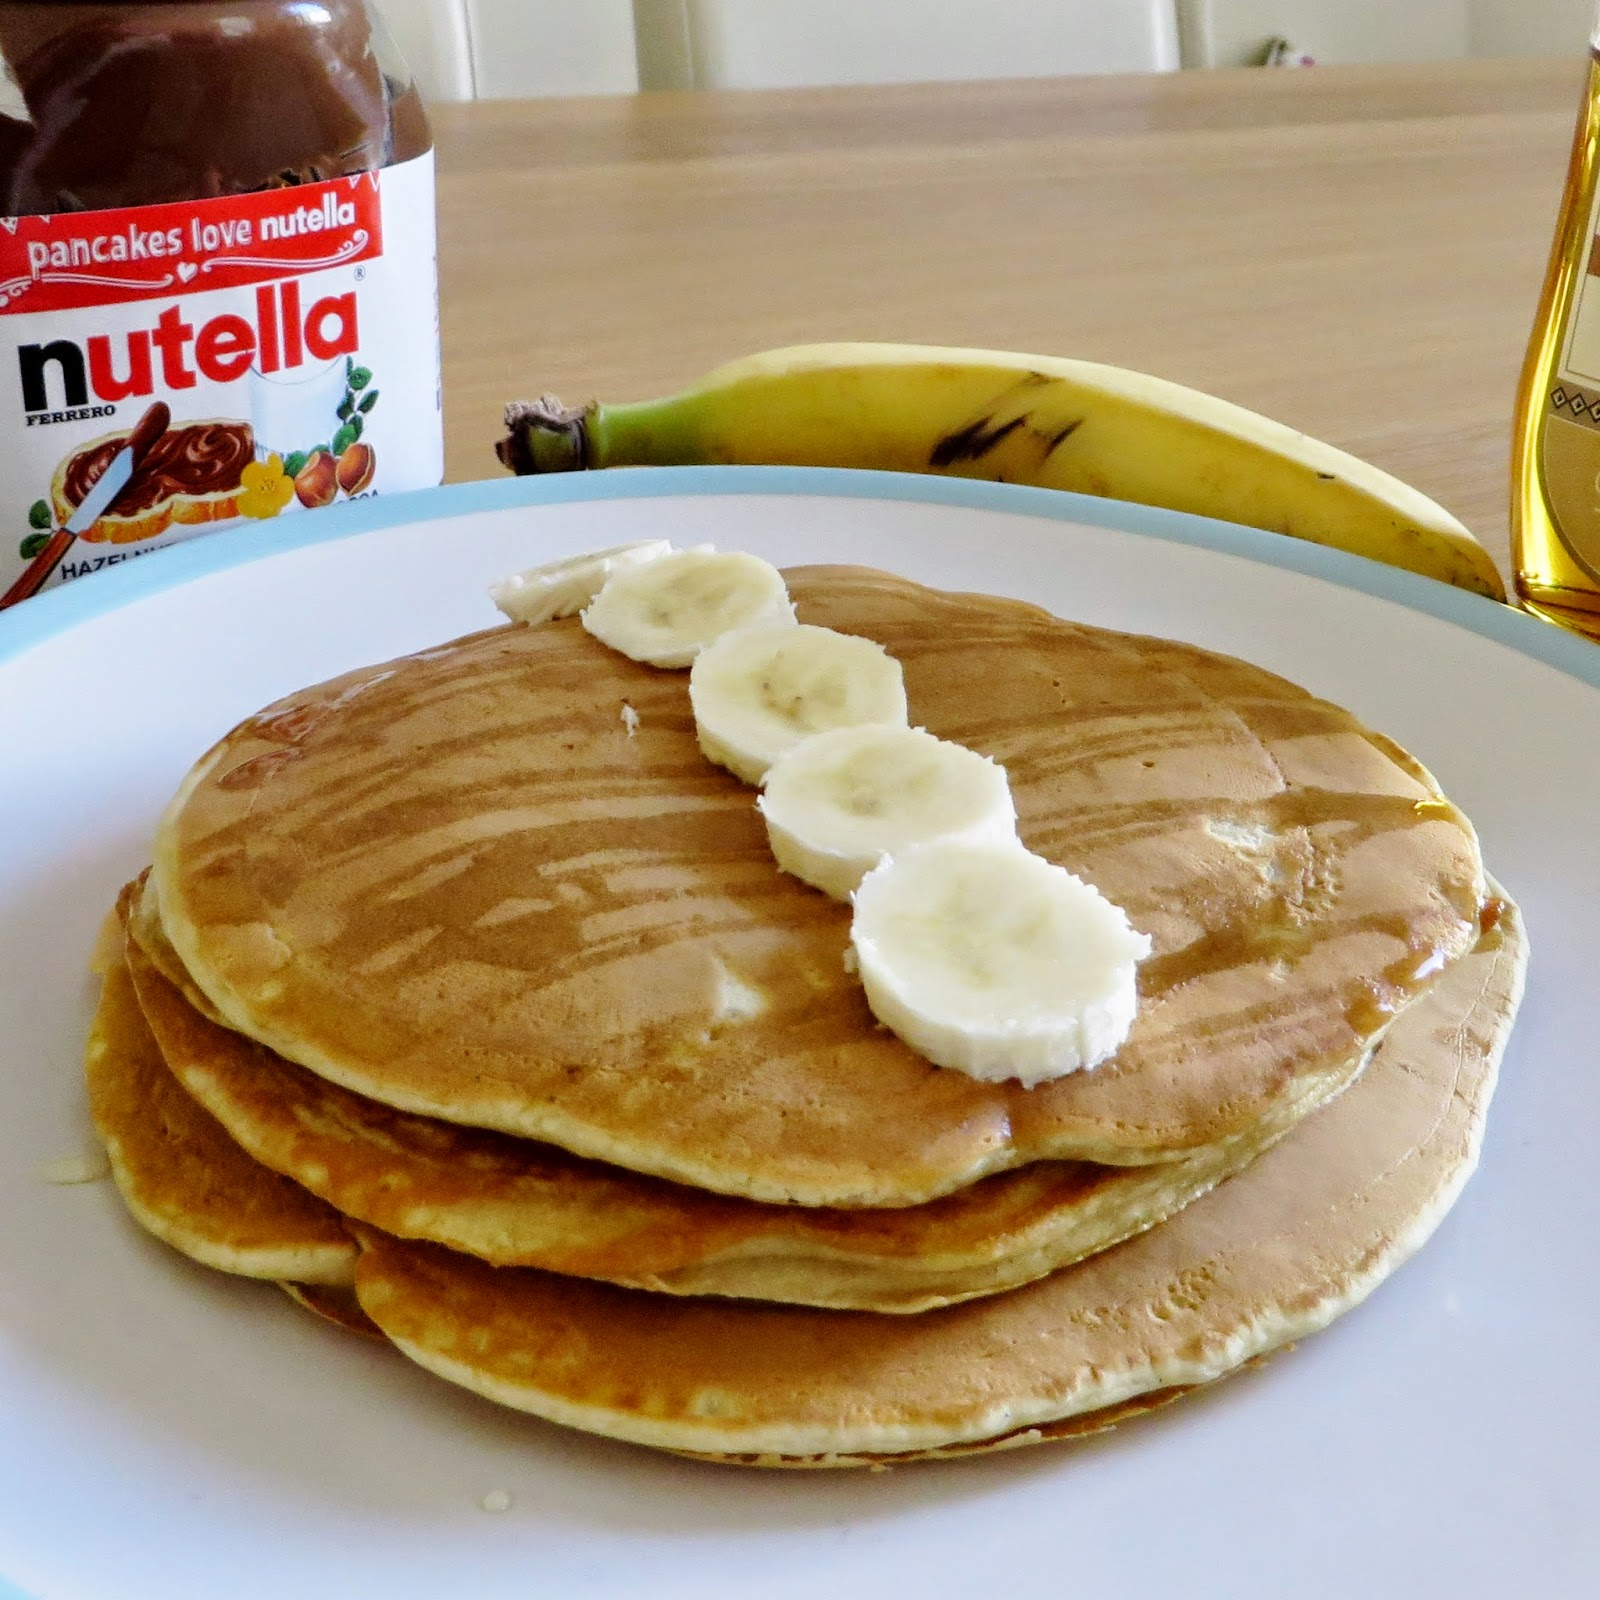 Erins Ever After, Pancakes, Shrove Tuesday, Nutella, Banana, Cooked Breakfast